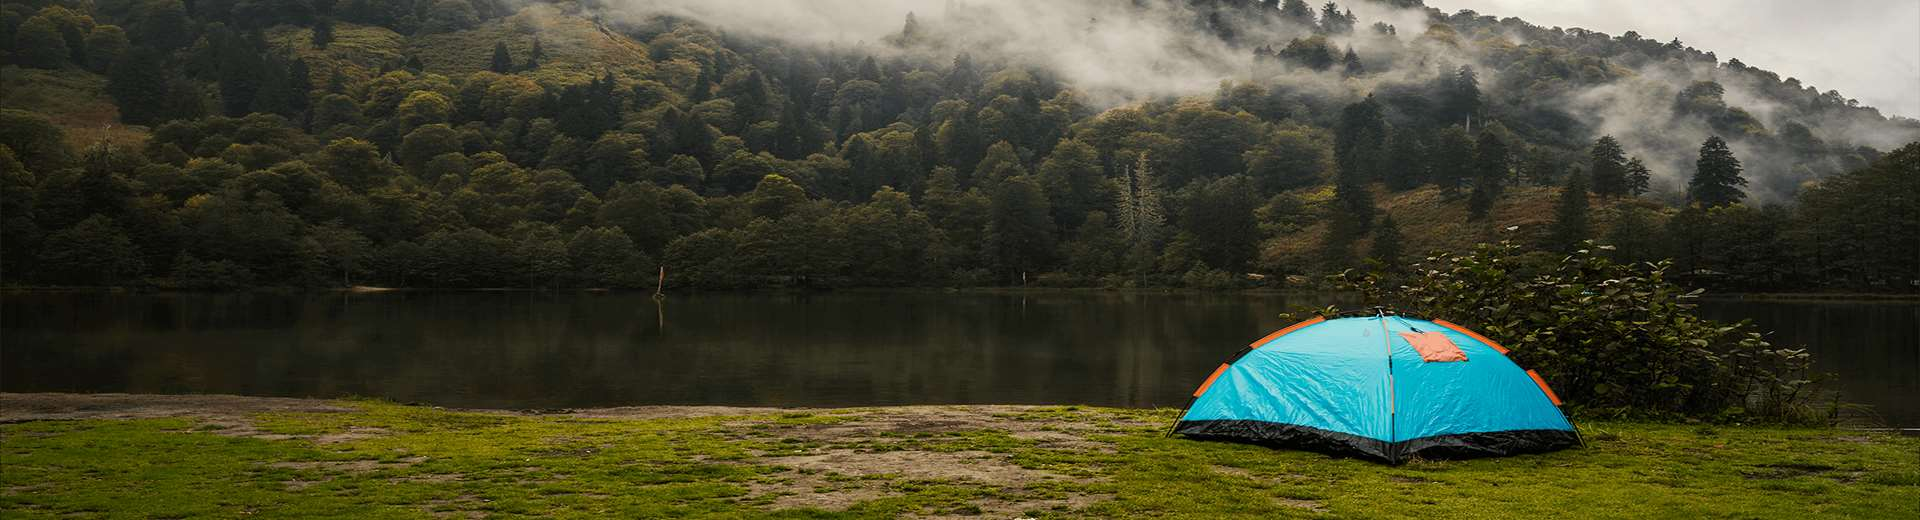 Image of camping tent beside lake and hillside